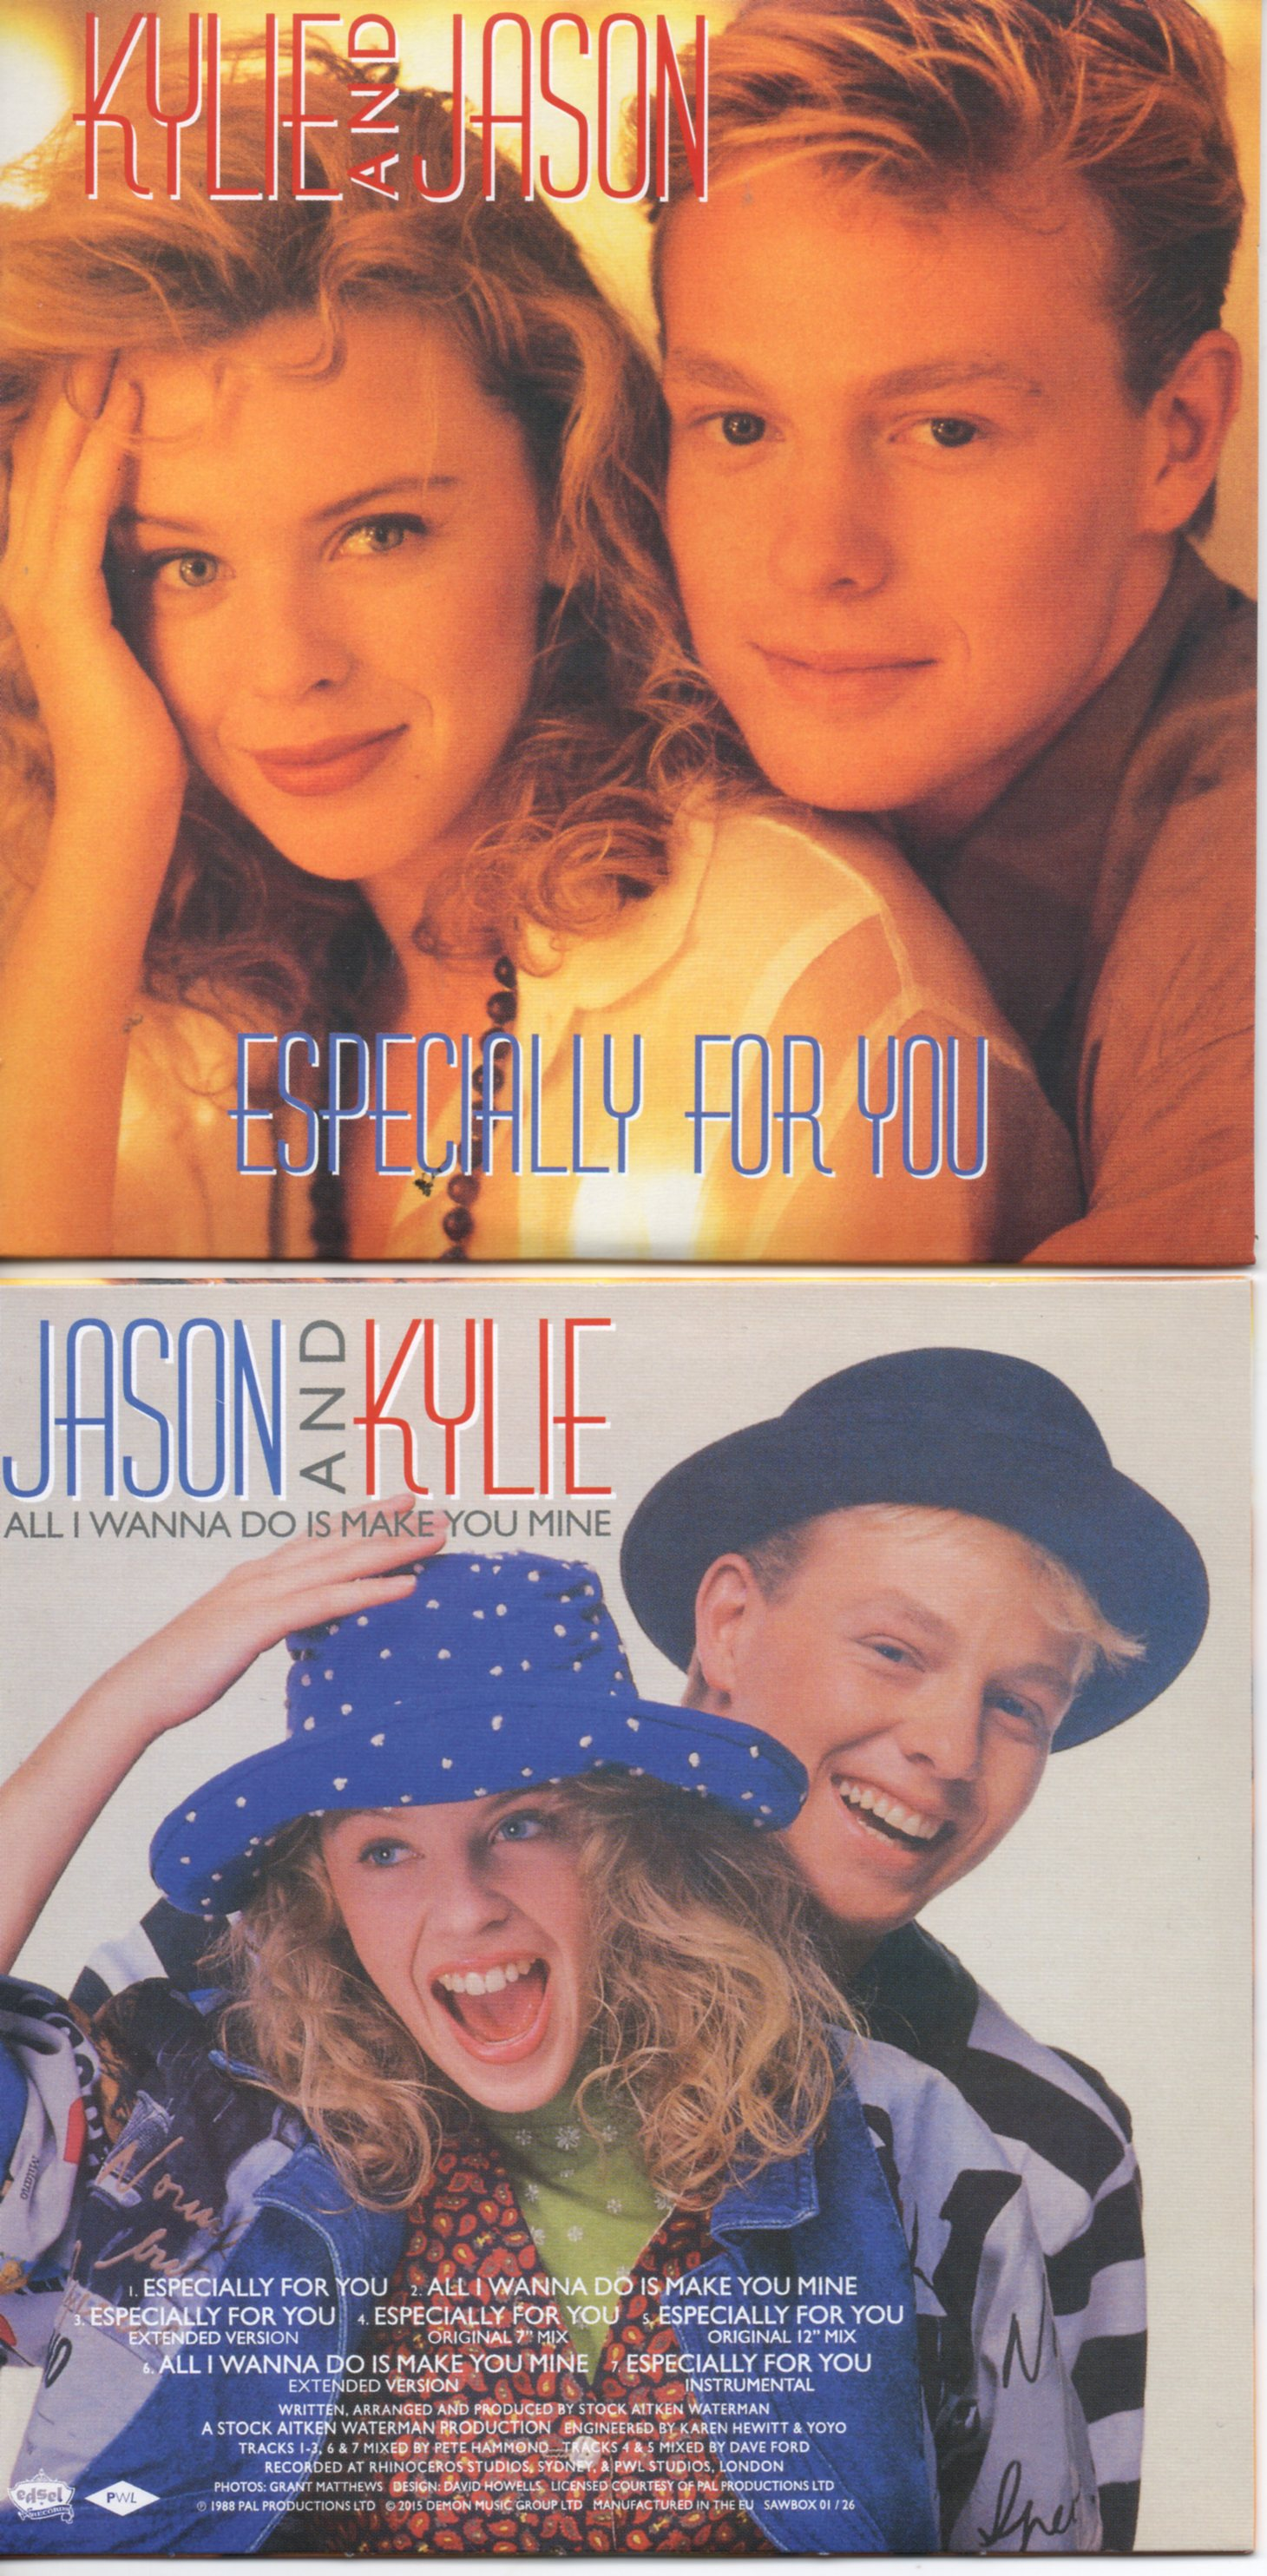 KYLIE MINOGUE & JASON DONOVAN - STOCK AITKEN WATERMAN - PWL - Especially For You - 7-track CARD SLEEVE REMIXES - CD single